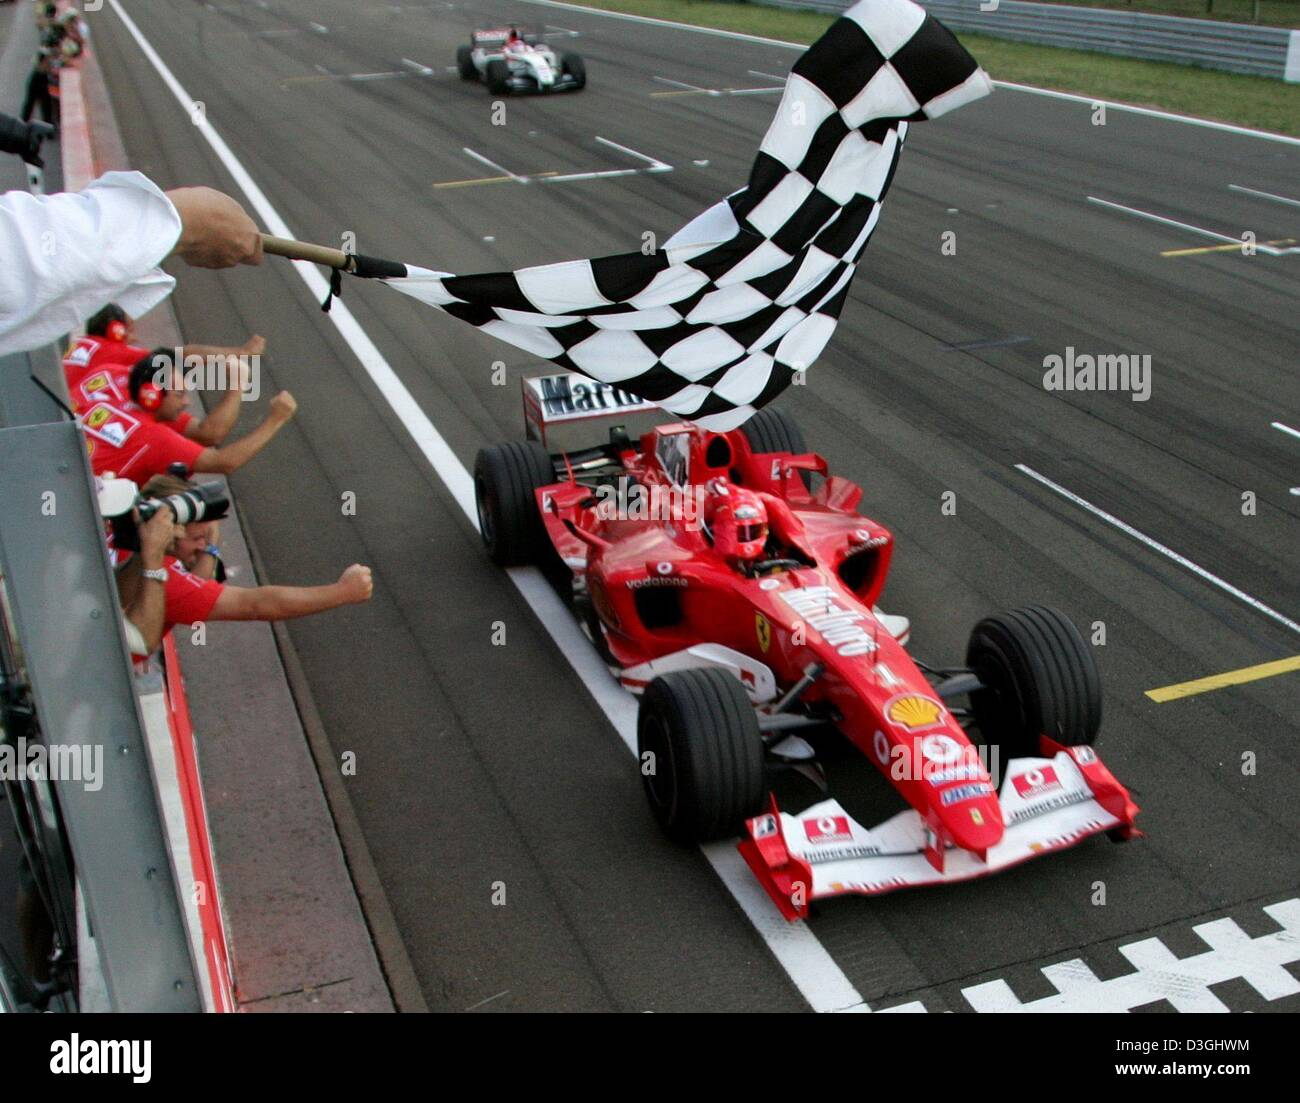 Racing Checkered Flag >> (dpa) - German formula one pilot Michael Schumacher races with his Stock Photo, Royalty Free ...